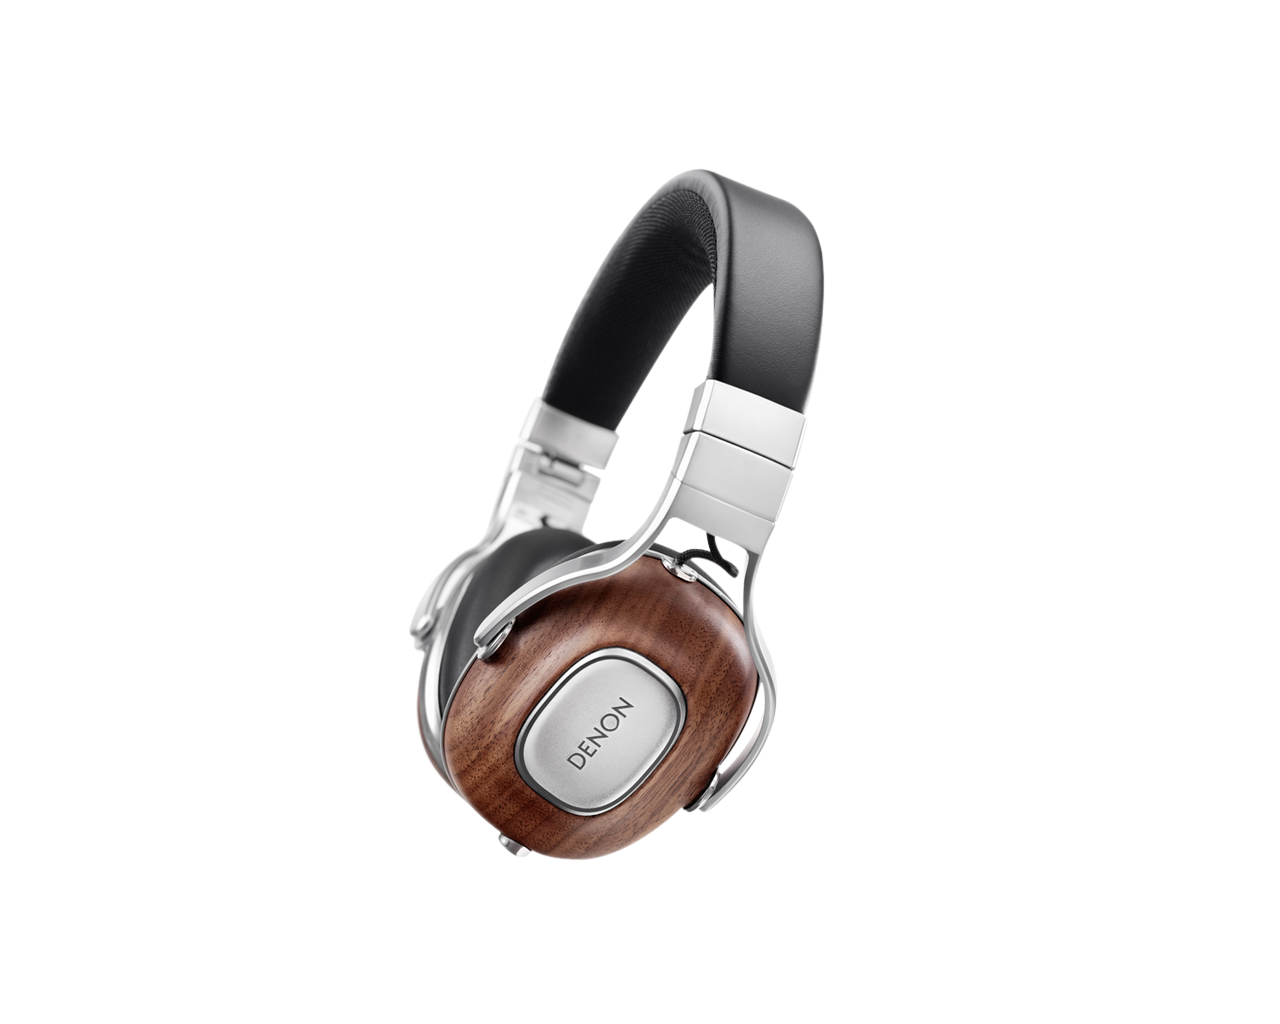 creative Headphone design and concept 5